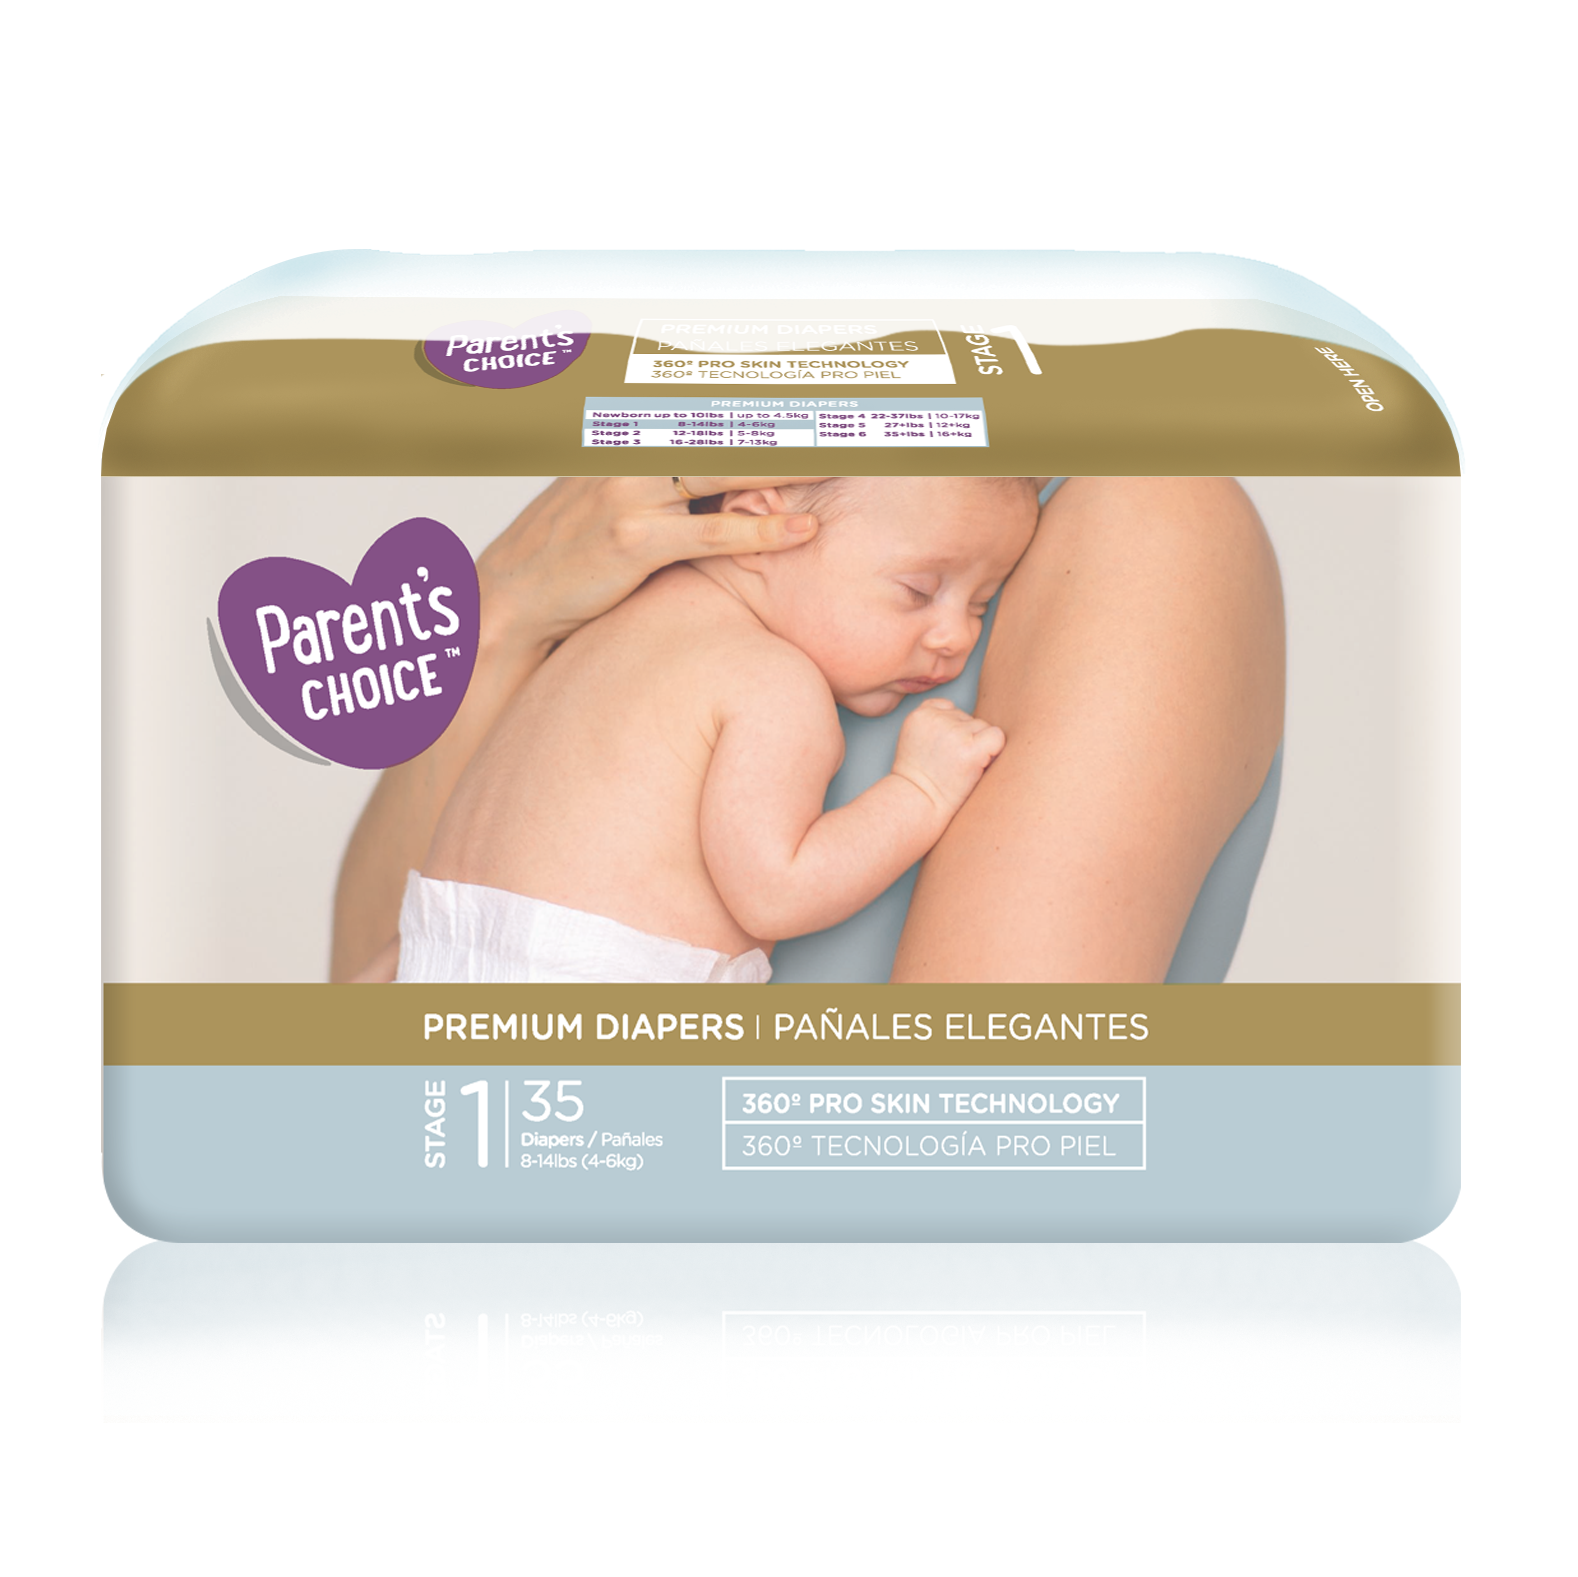 Parent's Choice Premium Diapers, Size 1: 8-14 lbs, 35 Count